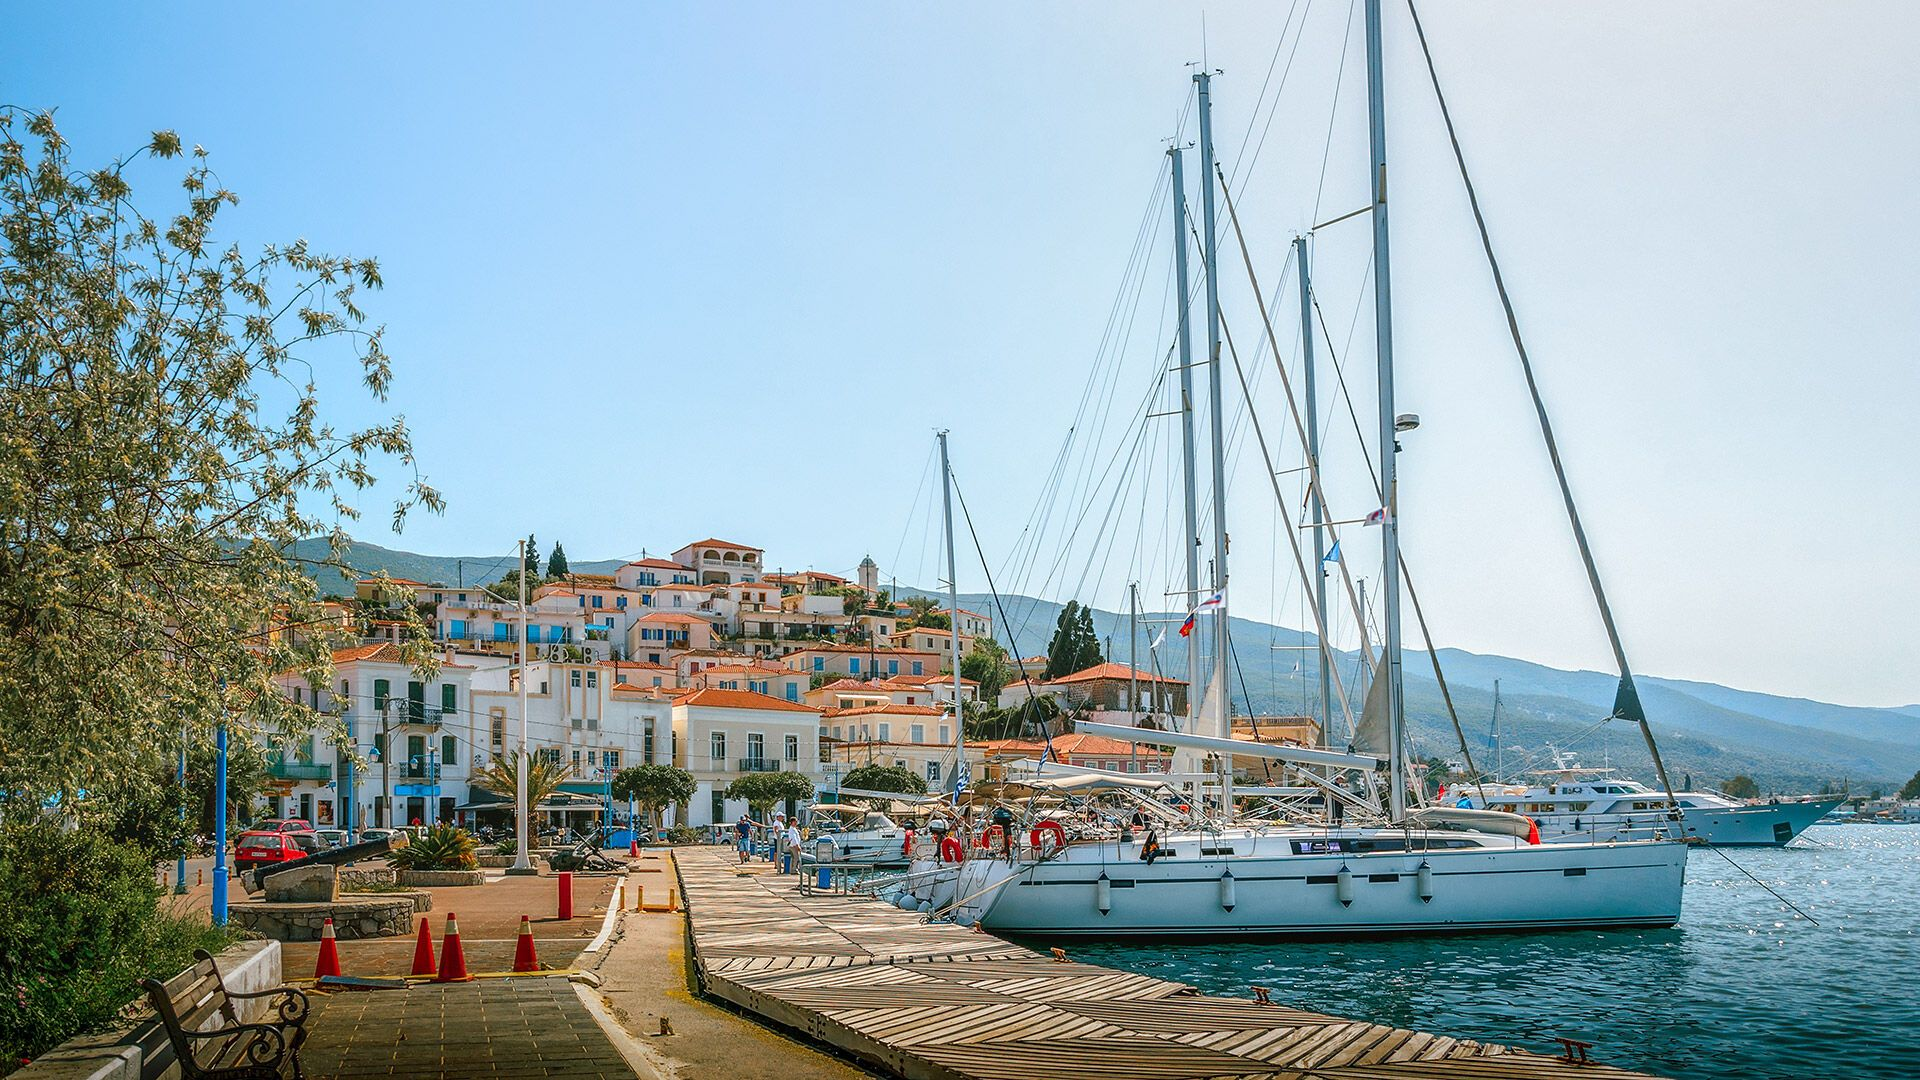 Sailing boats in Poros port